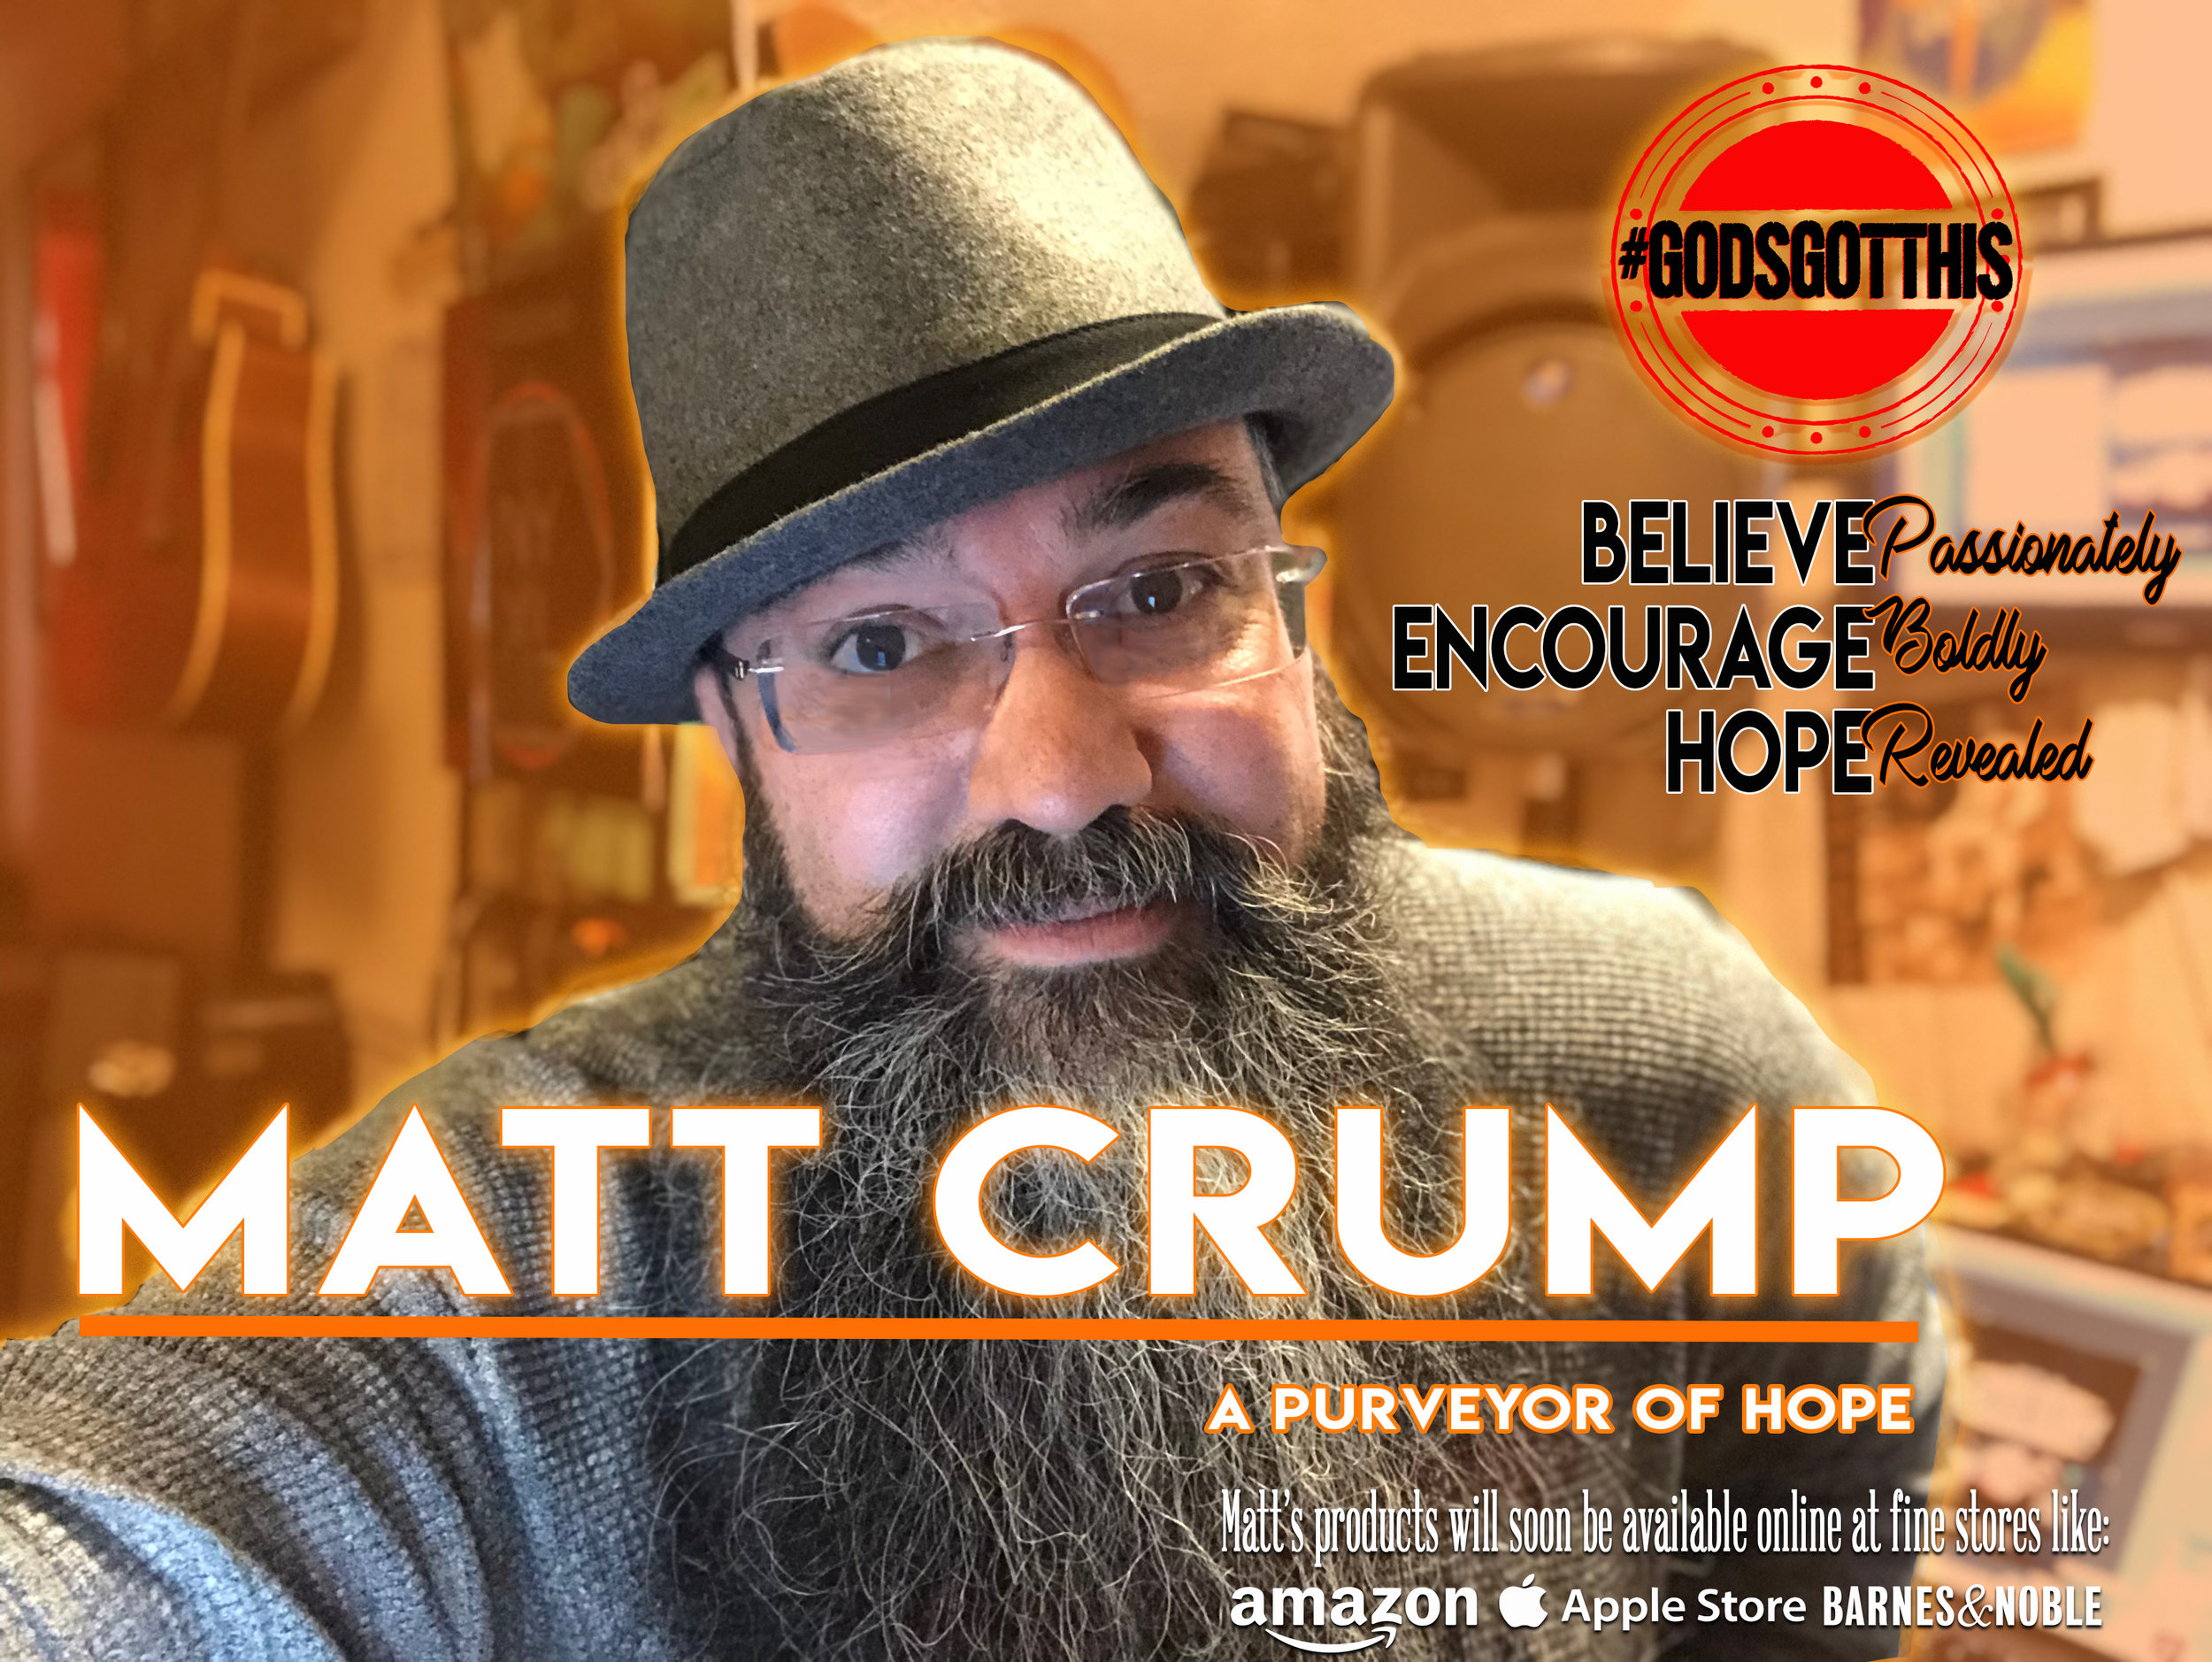 Matt Crump's Story